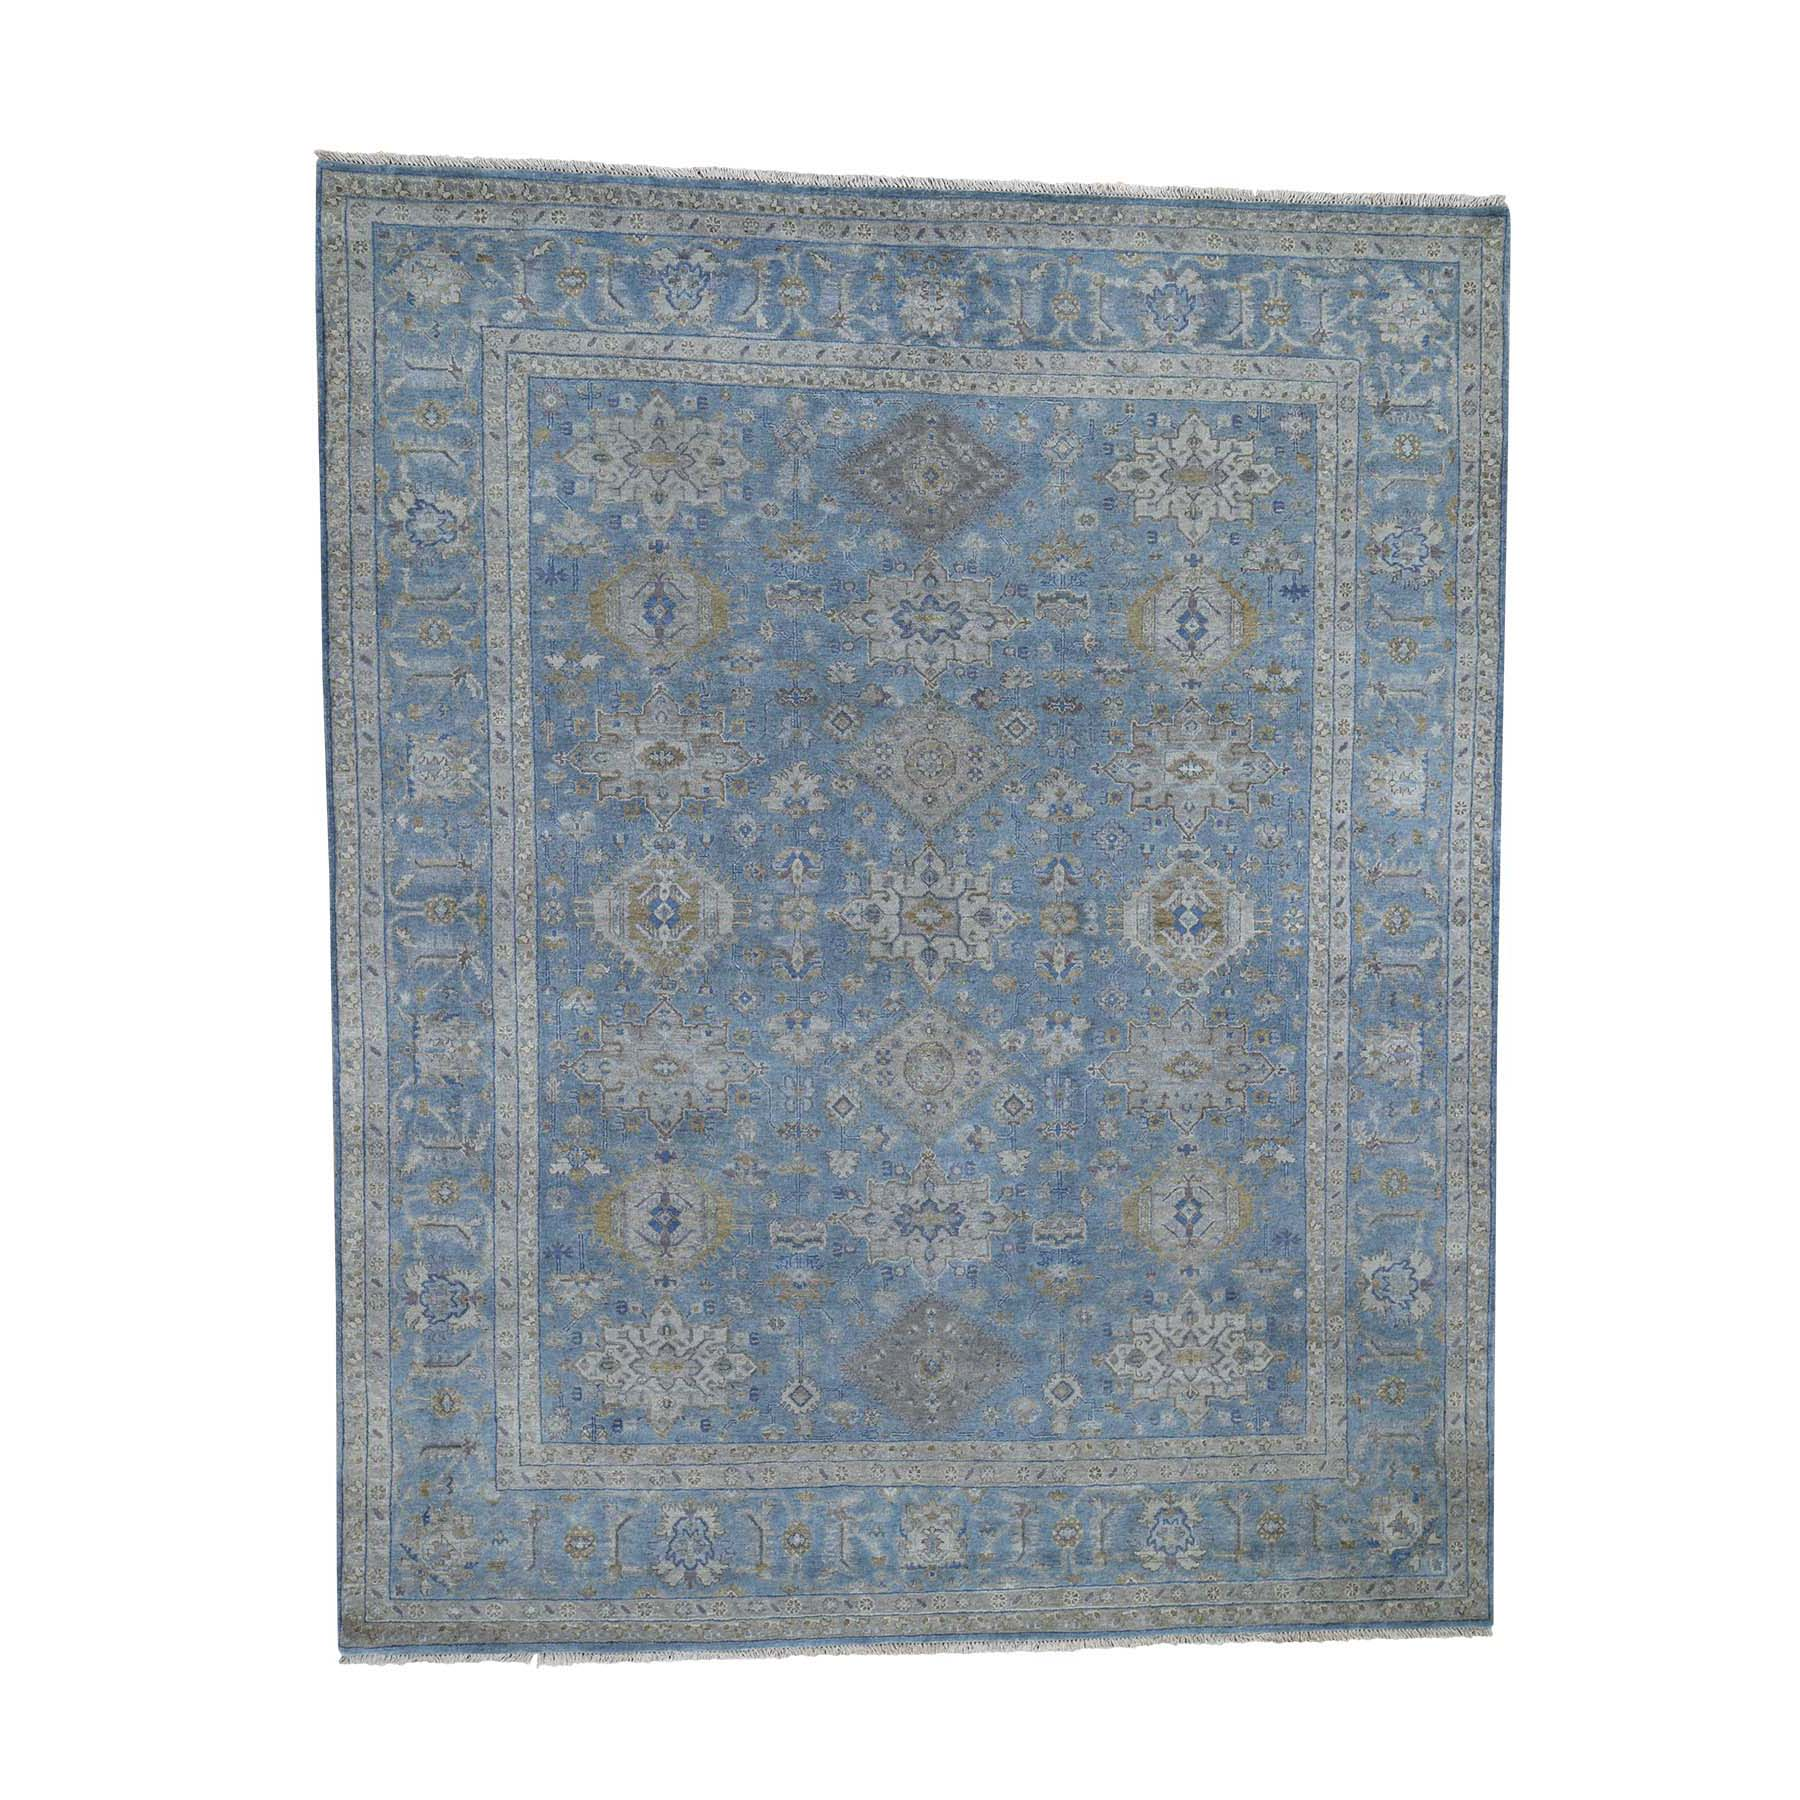 "8'1""X10' Blue Karajeh Design Pure Wool Hand-Knotted Oriental Rug moade7c9"